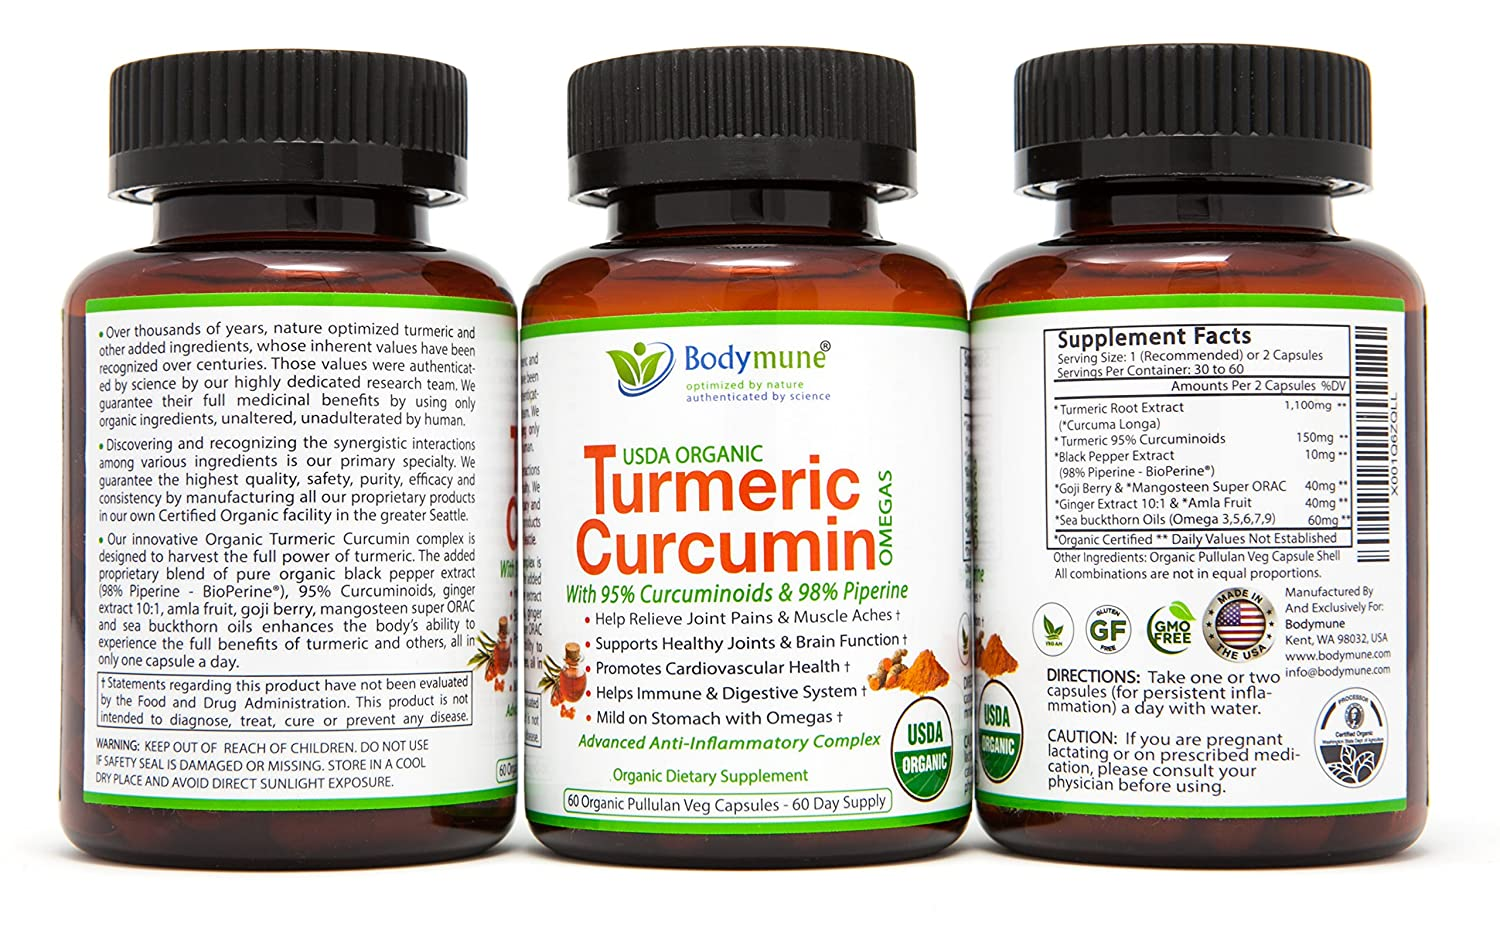 Organic Turmeric Curcumin Supplement Organic Turmeric Capsules Best Organic Turmeric Supplement with Black Pepper Turmeric with Piperine 95 Curcuminoids Ginger Amla Goji Omega – 60 Day Supply